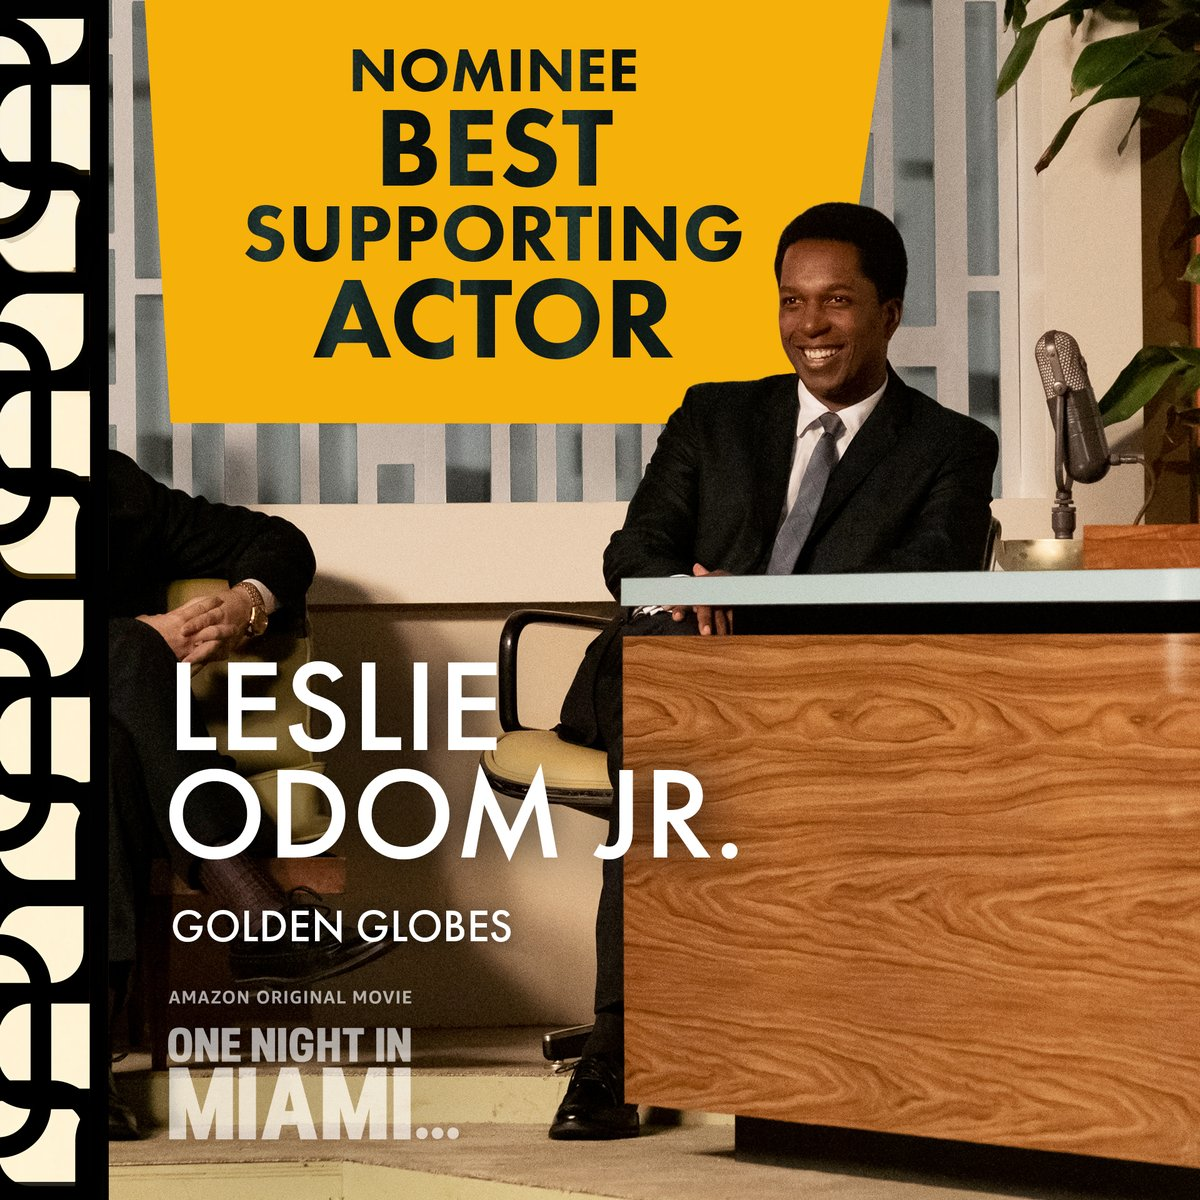 You send me! @leslieodomjr just grabbed a #GoldenGlobes nomination for Best Supporting Actor,  Motion Picture for One Night in Miami ⭐️